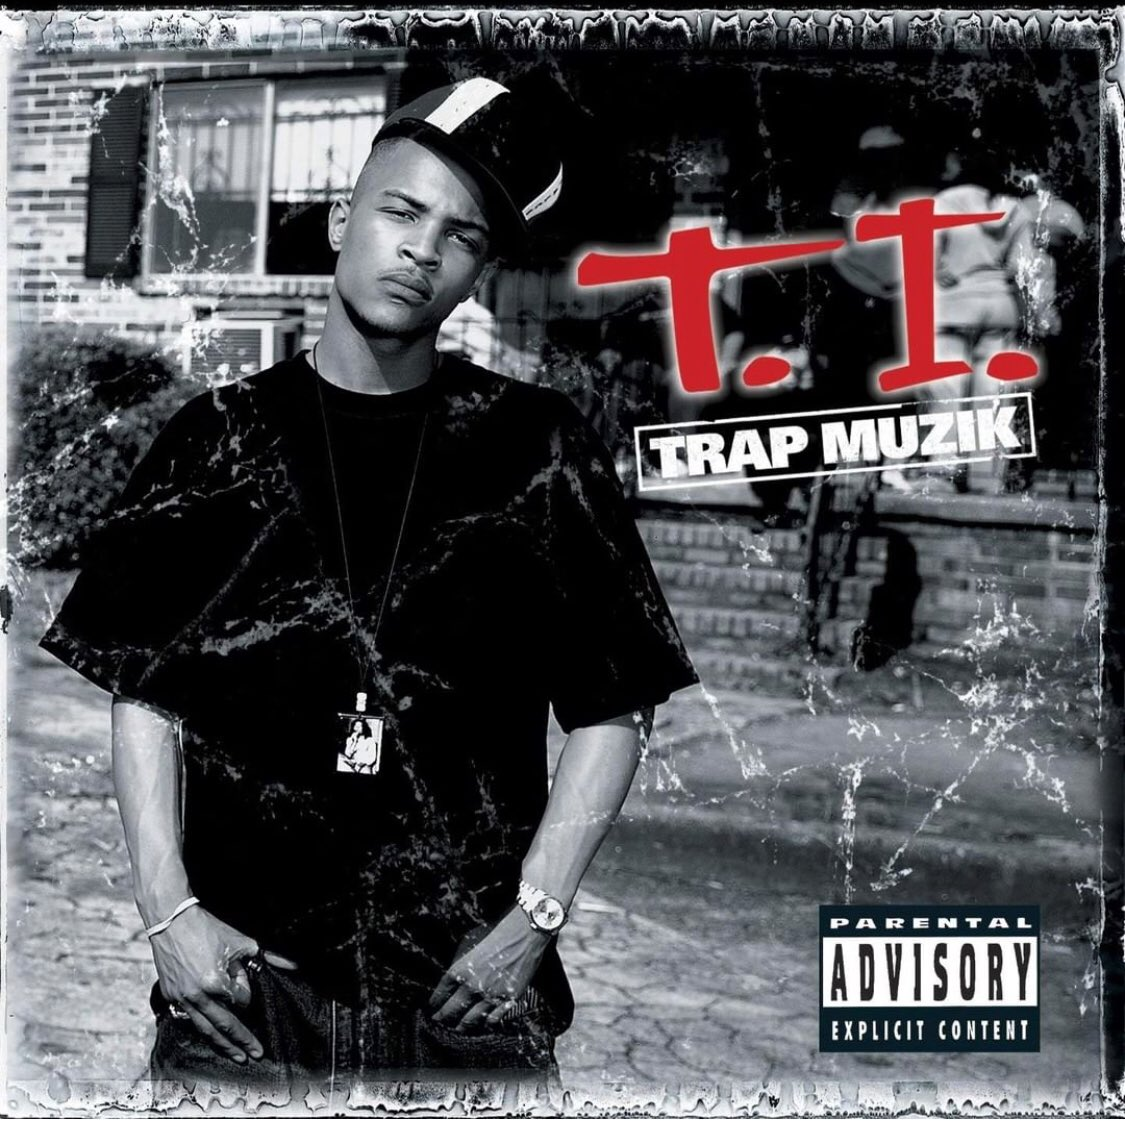 15 years ������ @Tip https://t.co/GDJXC9ZmC7